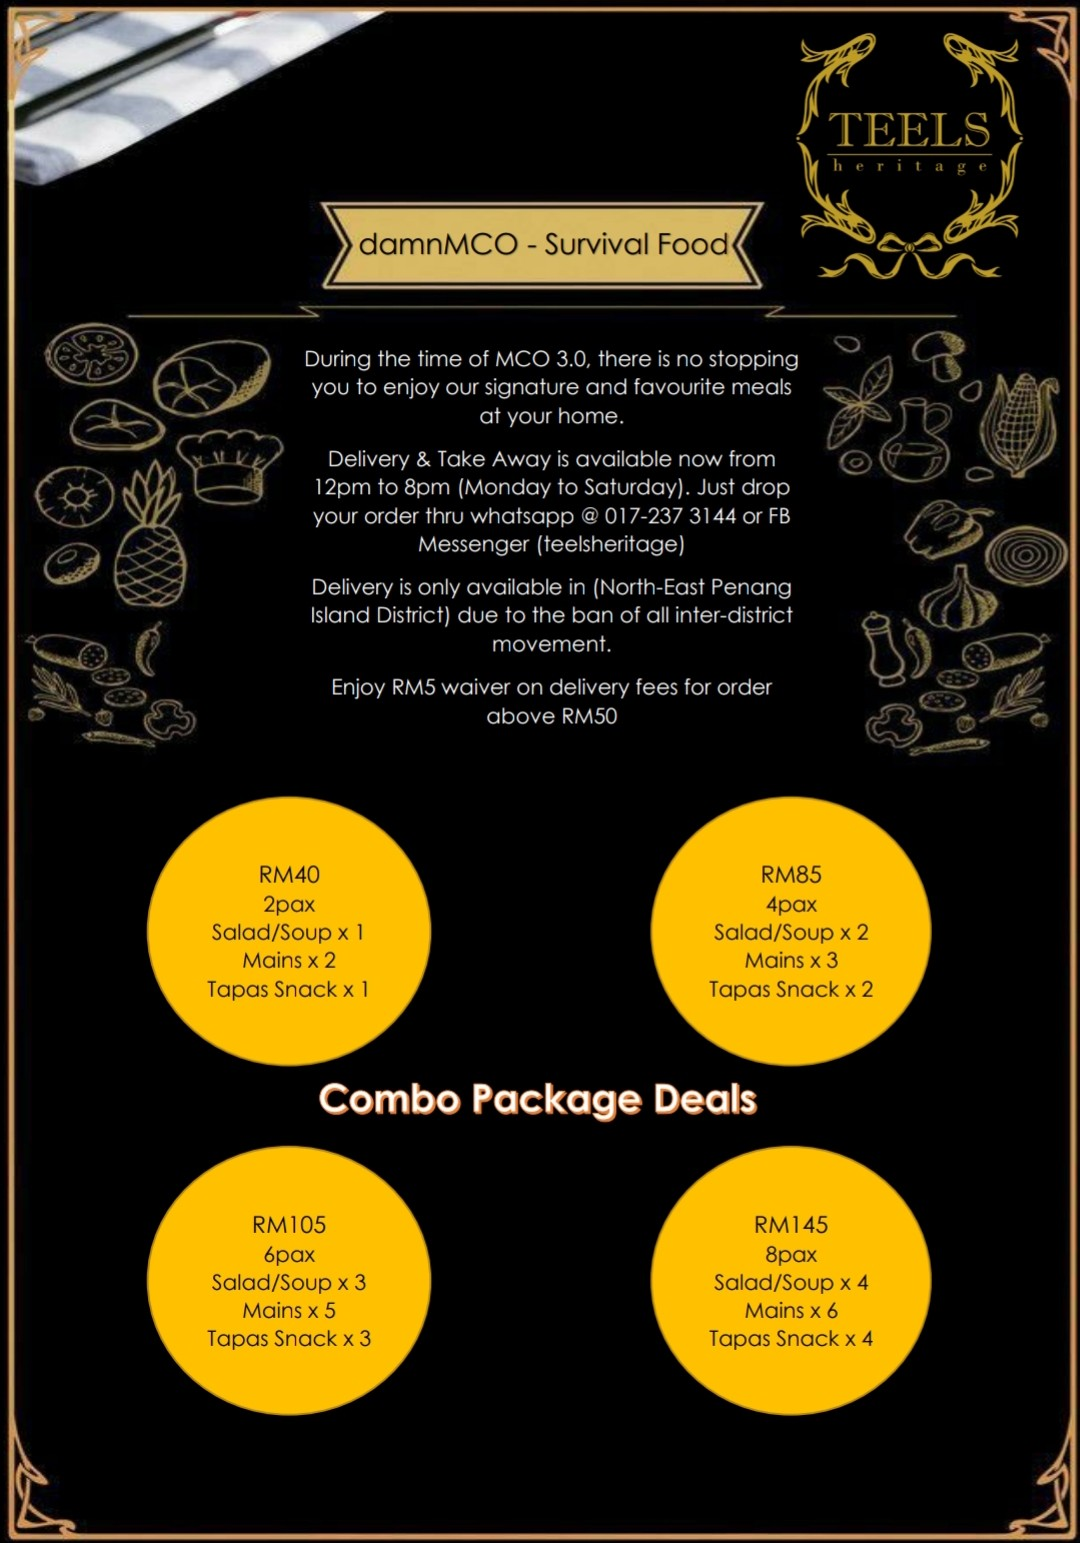 Combo Package Deals by Teels Heritage Cafe